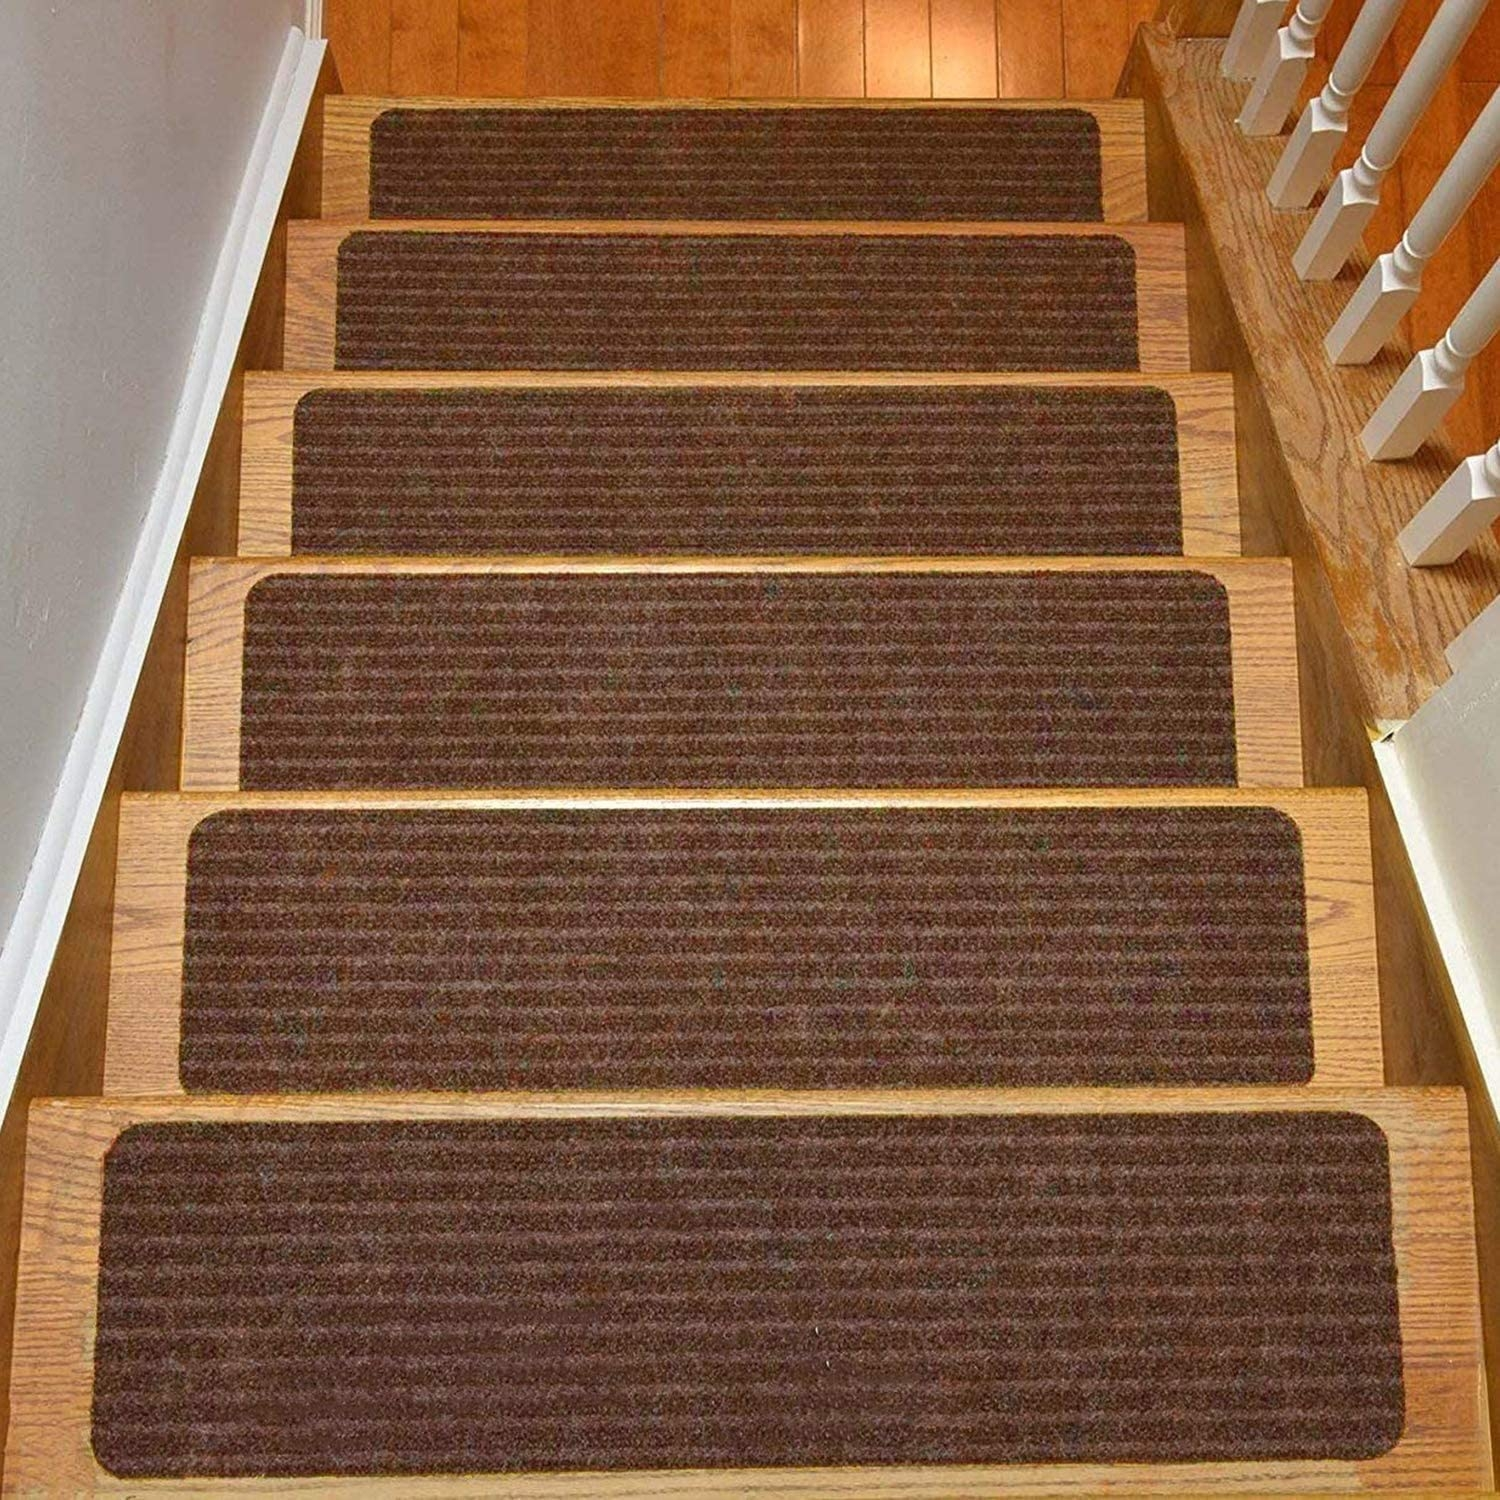 Amazon Com Rugstylesonline Stair Treads Collection Set Of 13 | Carpet Stair Treads For Sale | Bullnose Carpet | Staircase Remodel | Stair Runners | Carpet Runners | True Bullnose